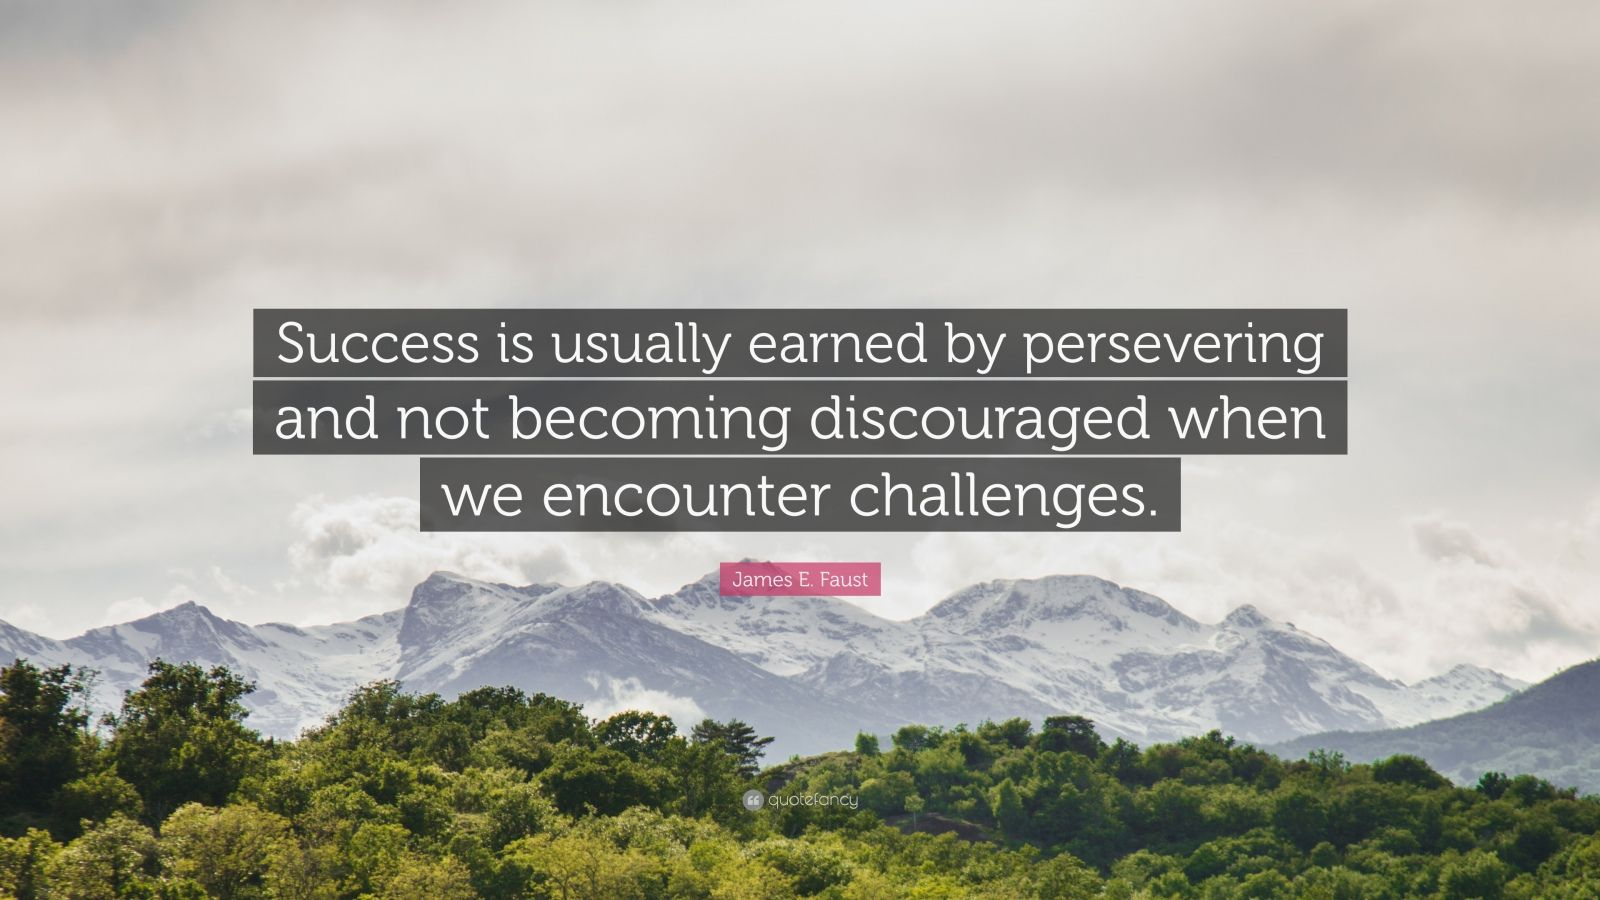 """James E. Faust Quote: """"Success is usually earned by persevering and not becoming discouraged when we encounter challenges."""""""